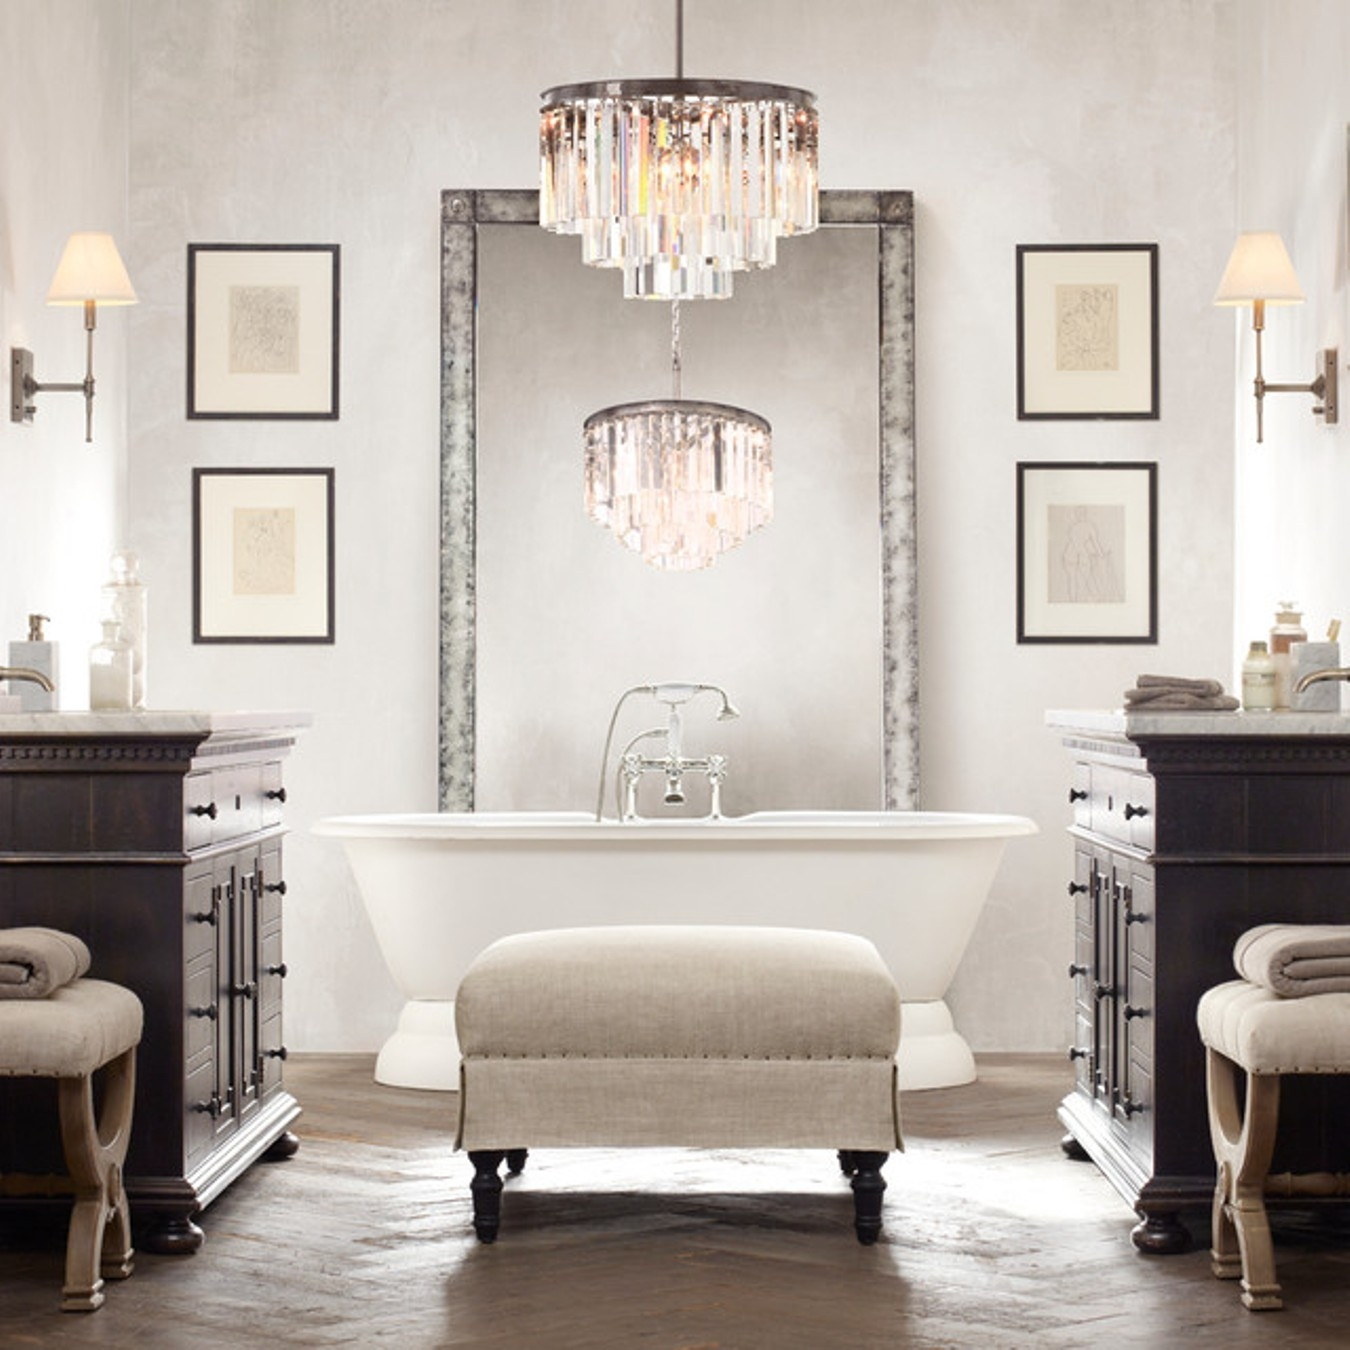 25 ideas of modern bathroom chandelier lighting chandelier ideas featured image of modern bathroom chandelier lighting aloadofball Image collections